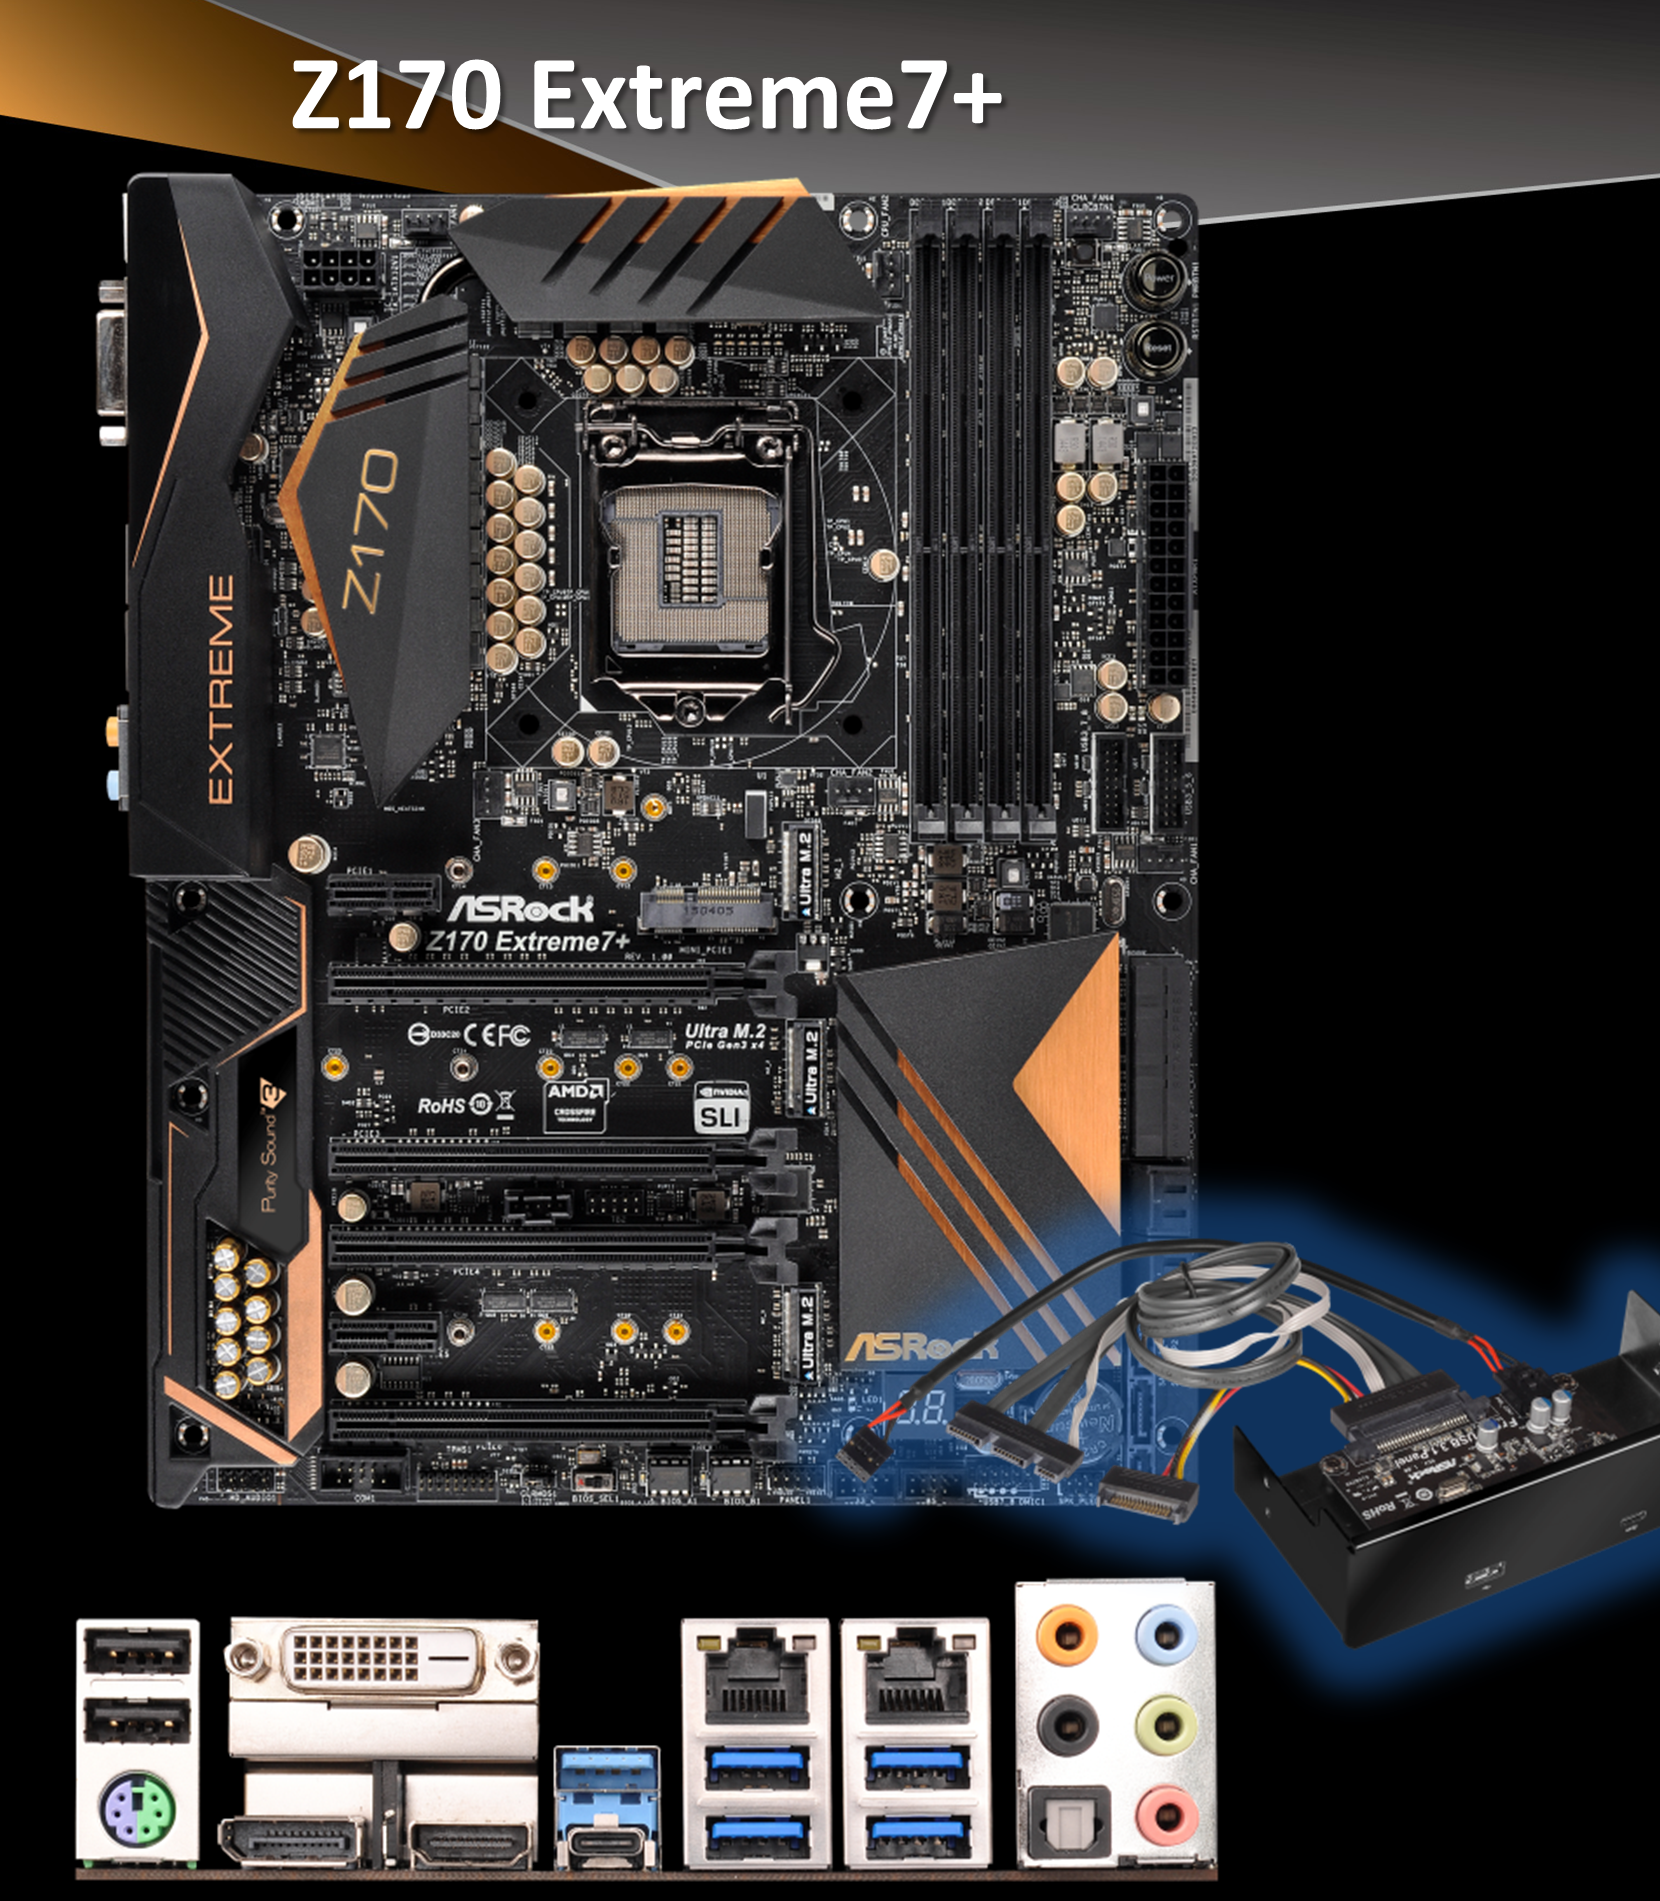 Driver for ASRock Z170 Extreme4+ Realtek Audio